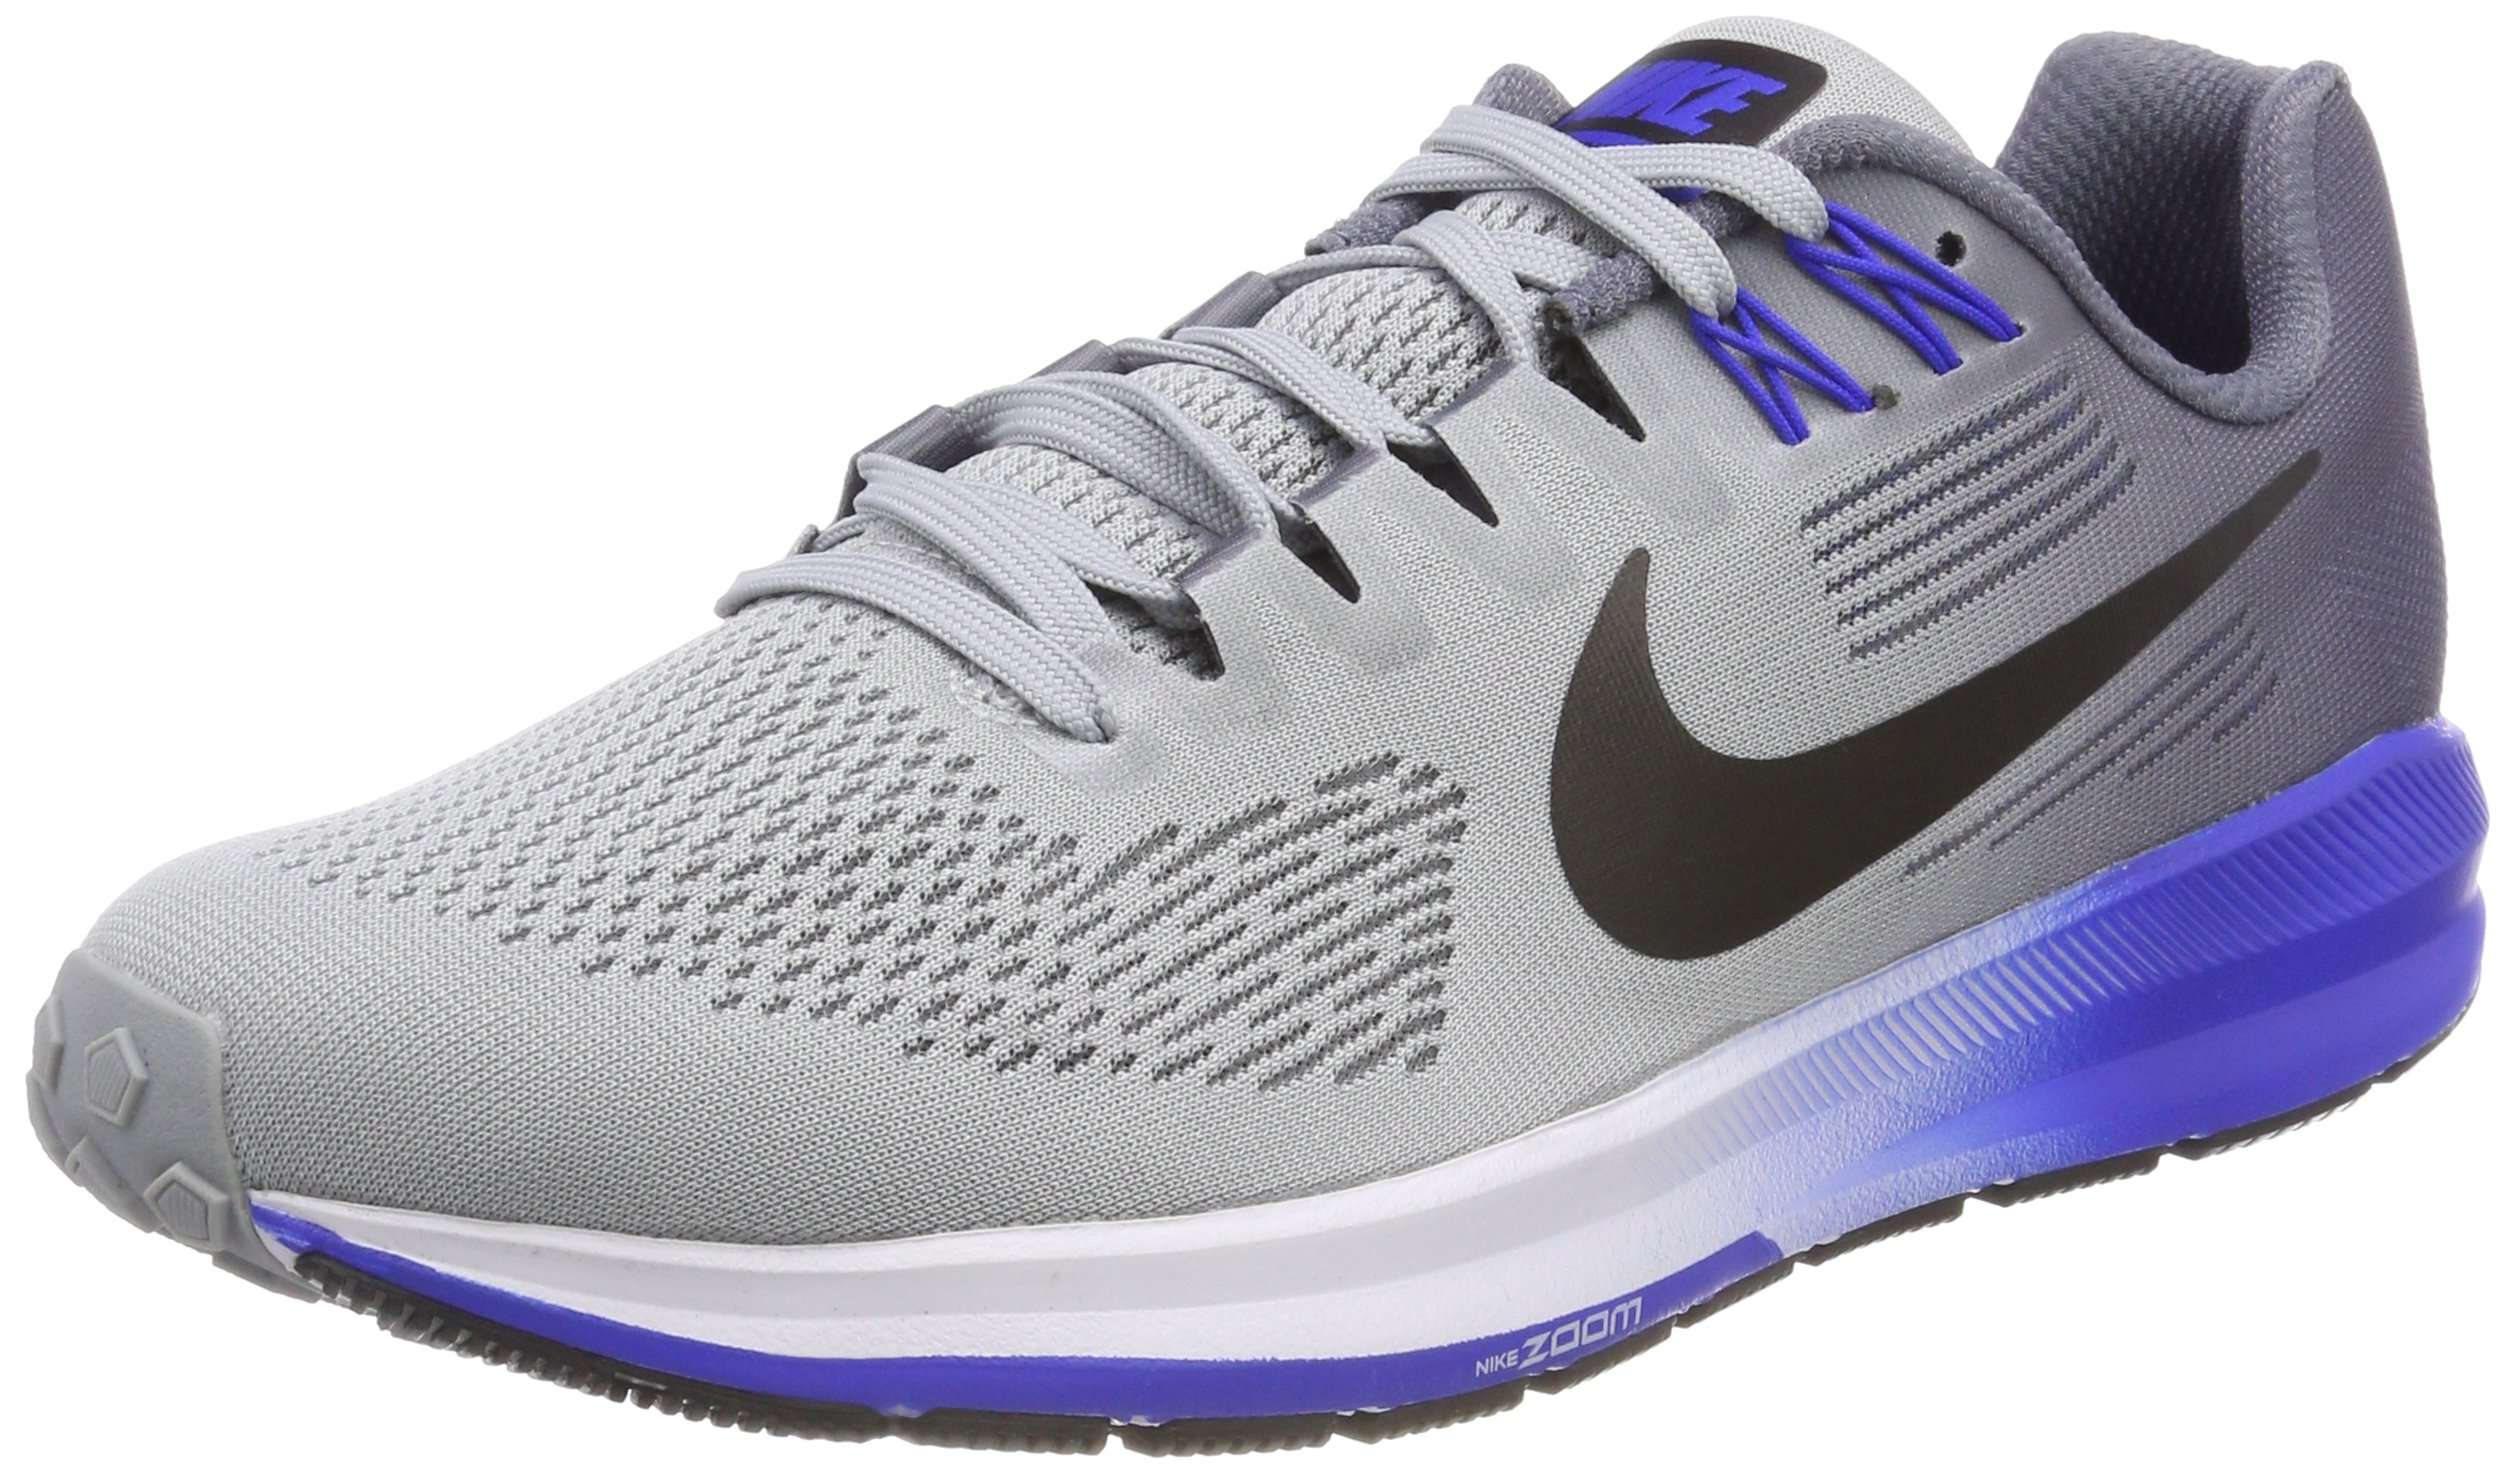 419d2a54ffbf Galleon - Nike Men s Air Zoom Structure 21 Running Shoe Wolf  Grey Black-Light Carbon-Hyper Royal 8.0